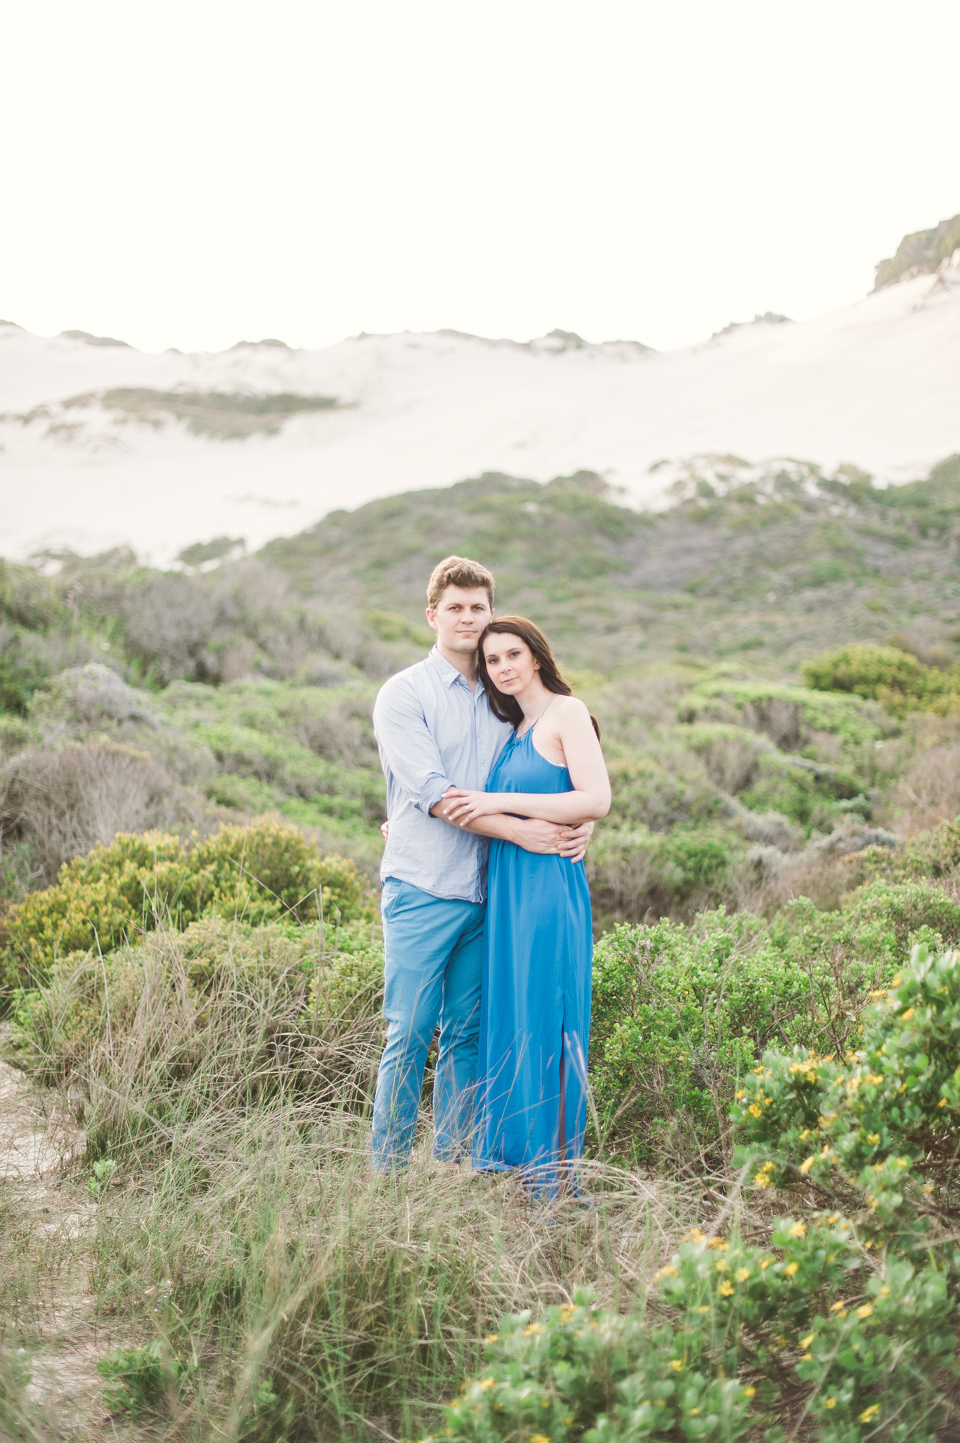 RYAN PARKER PHOTOGRAPHY_FINE ART_COUPLE SESSION_CAPE TOWN_L&C_DSC_0965.jpg